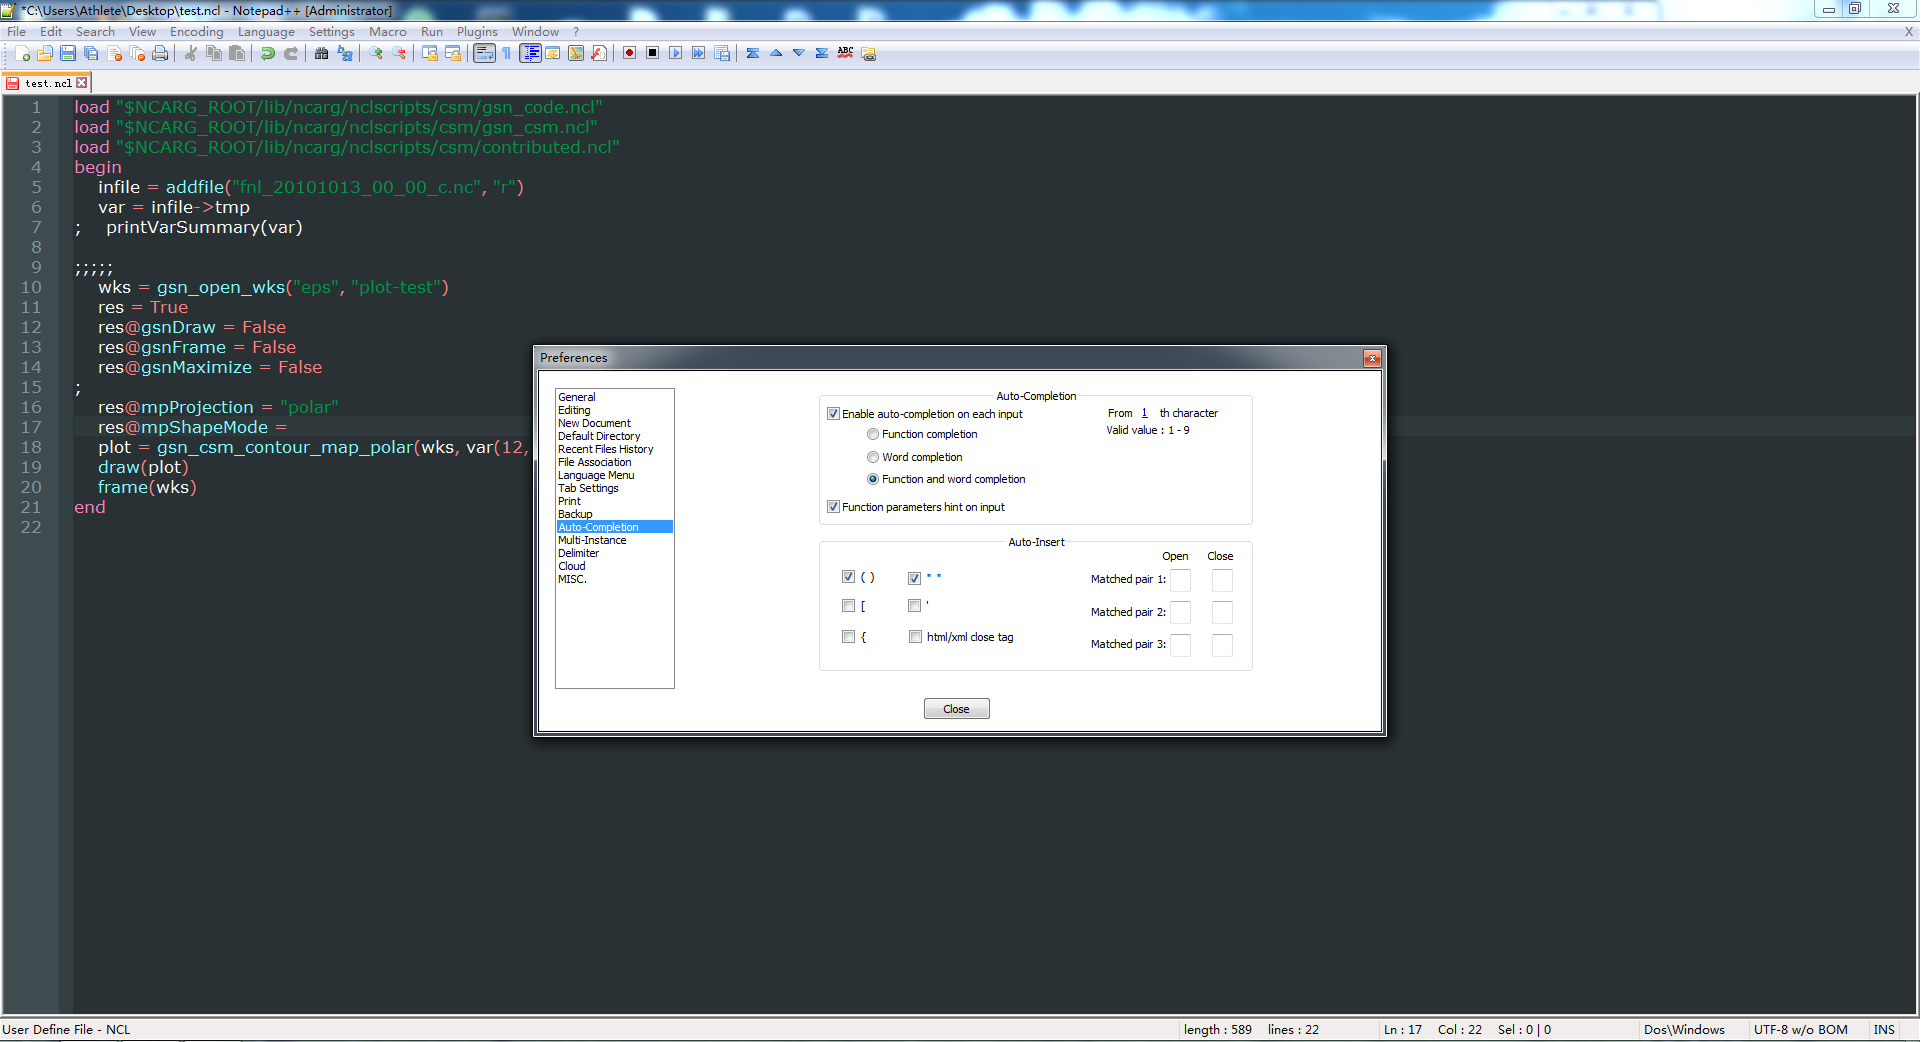 NCL: Editor Enhancements for use with NCL scripts